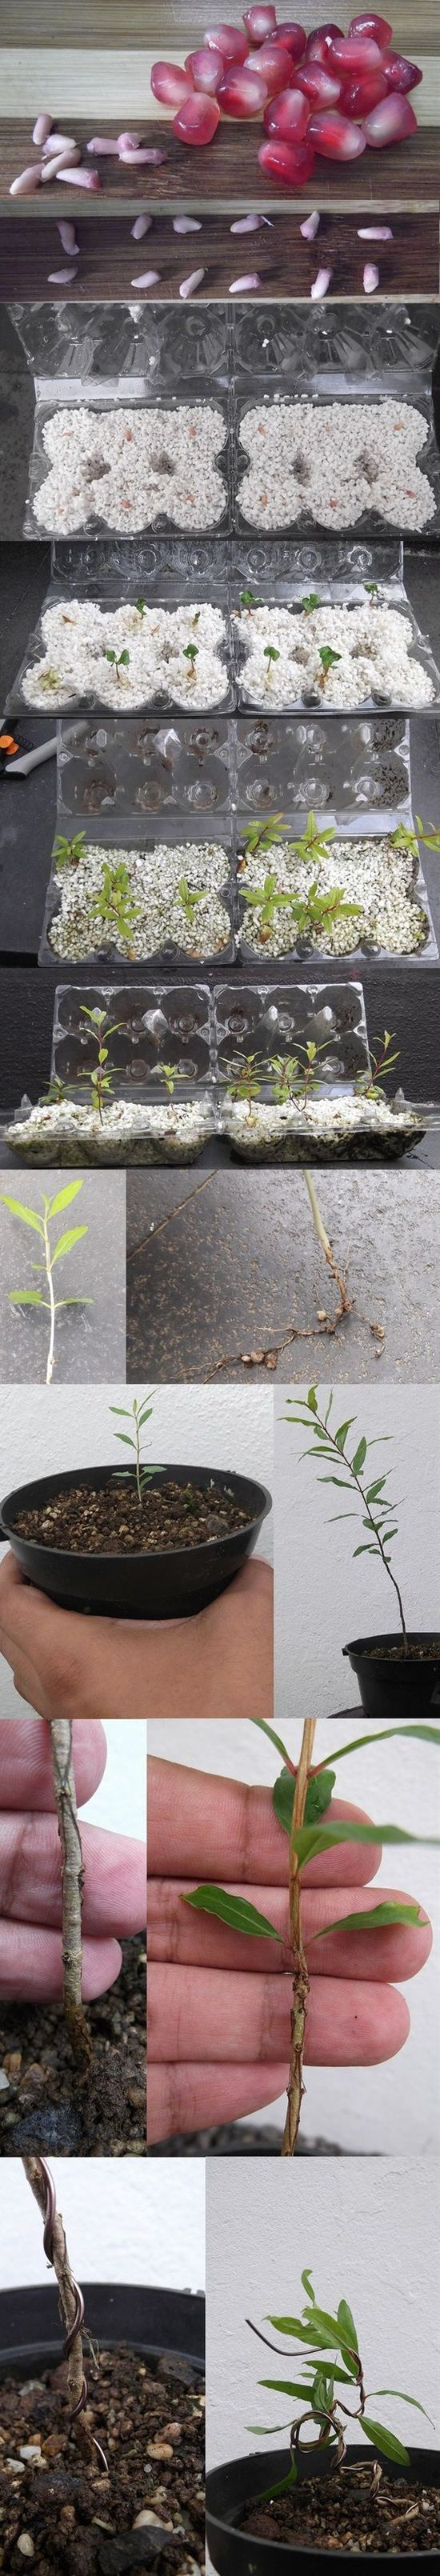 10 Brilliant Ideas To Root and Propagate Plants | Postris